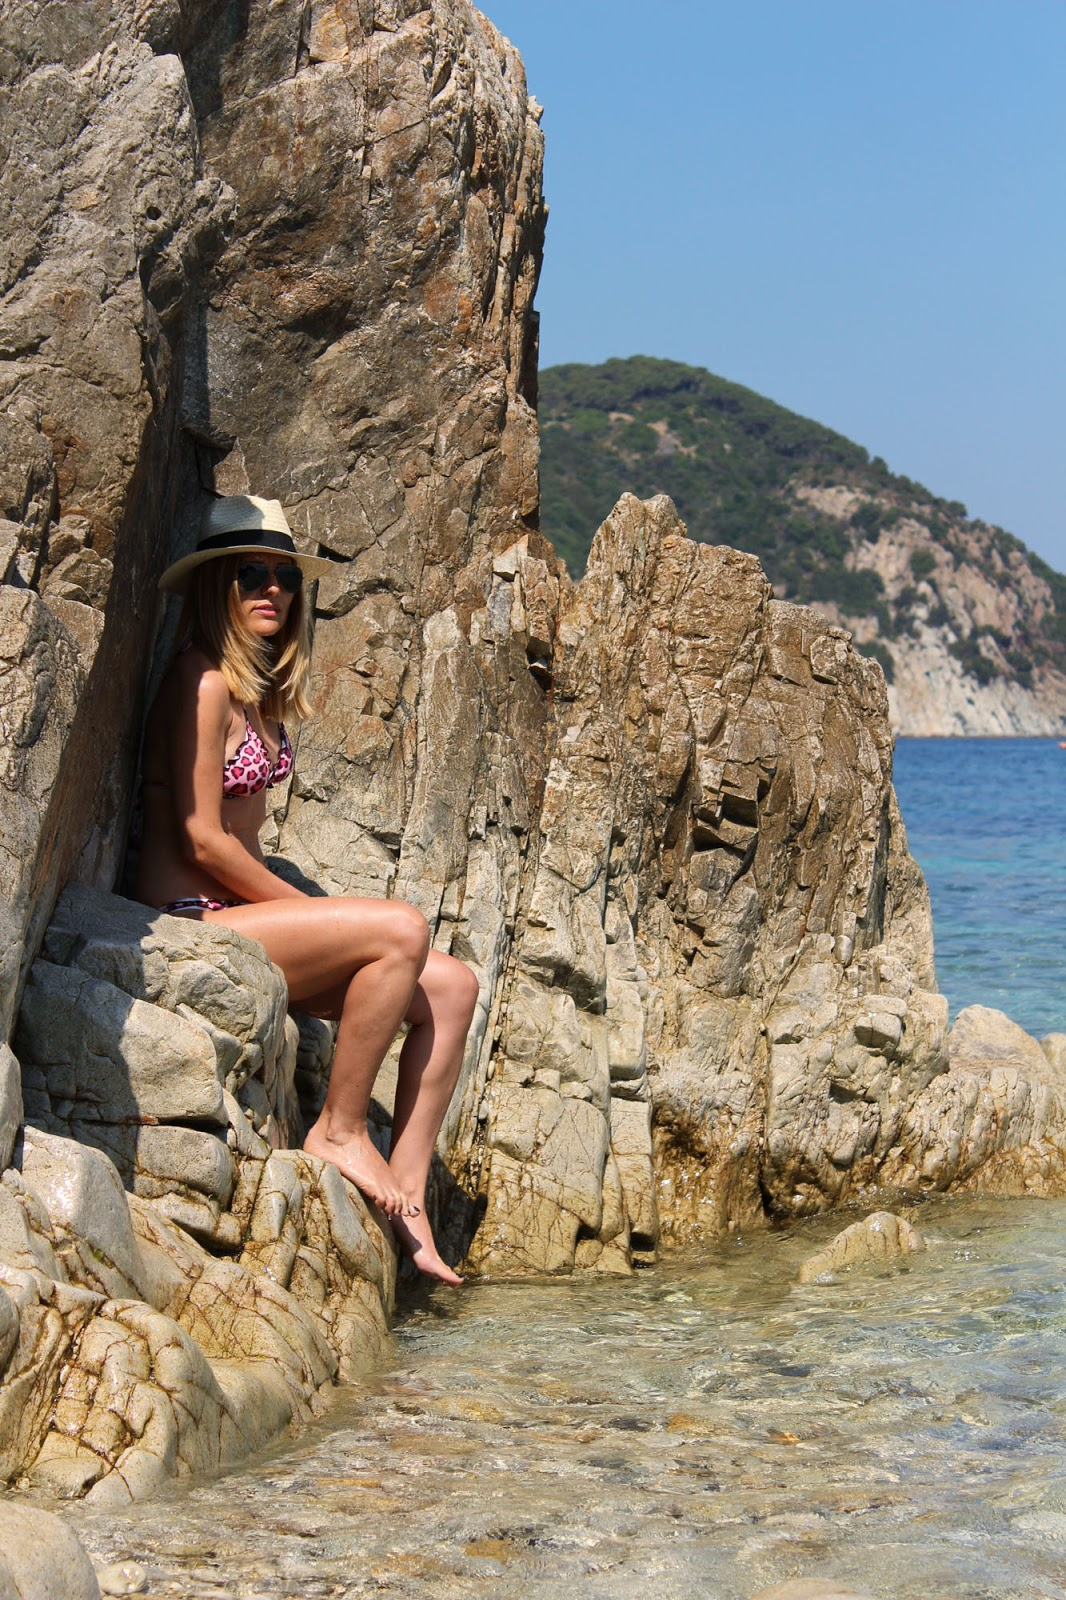 Eniwhere Fashion - BeBikini - Sansone Beach - costumi da bagno